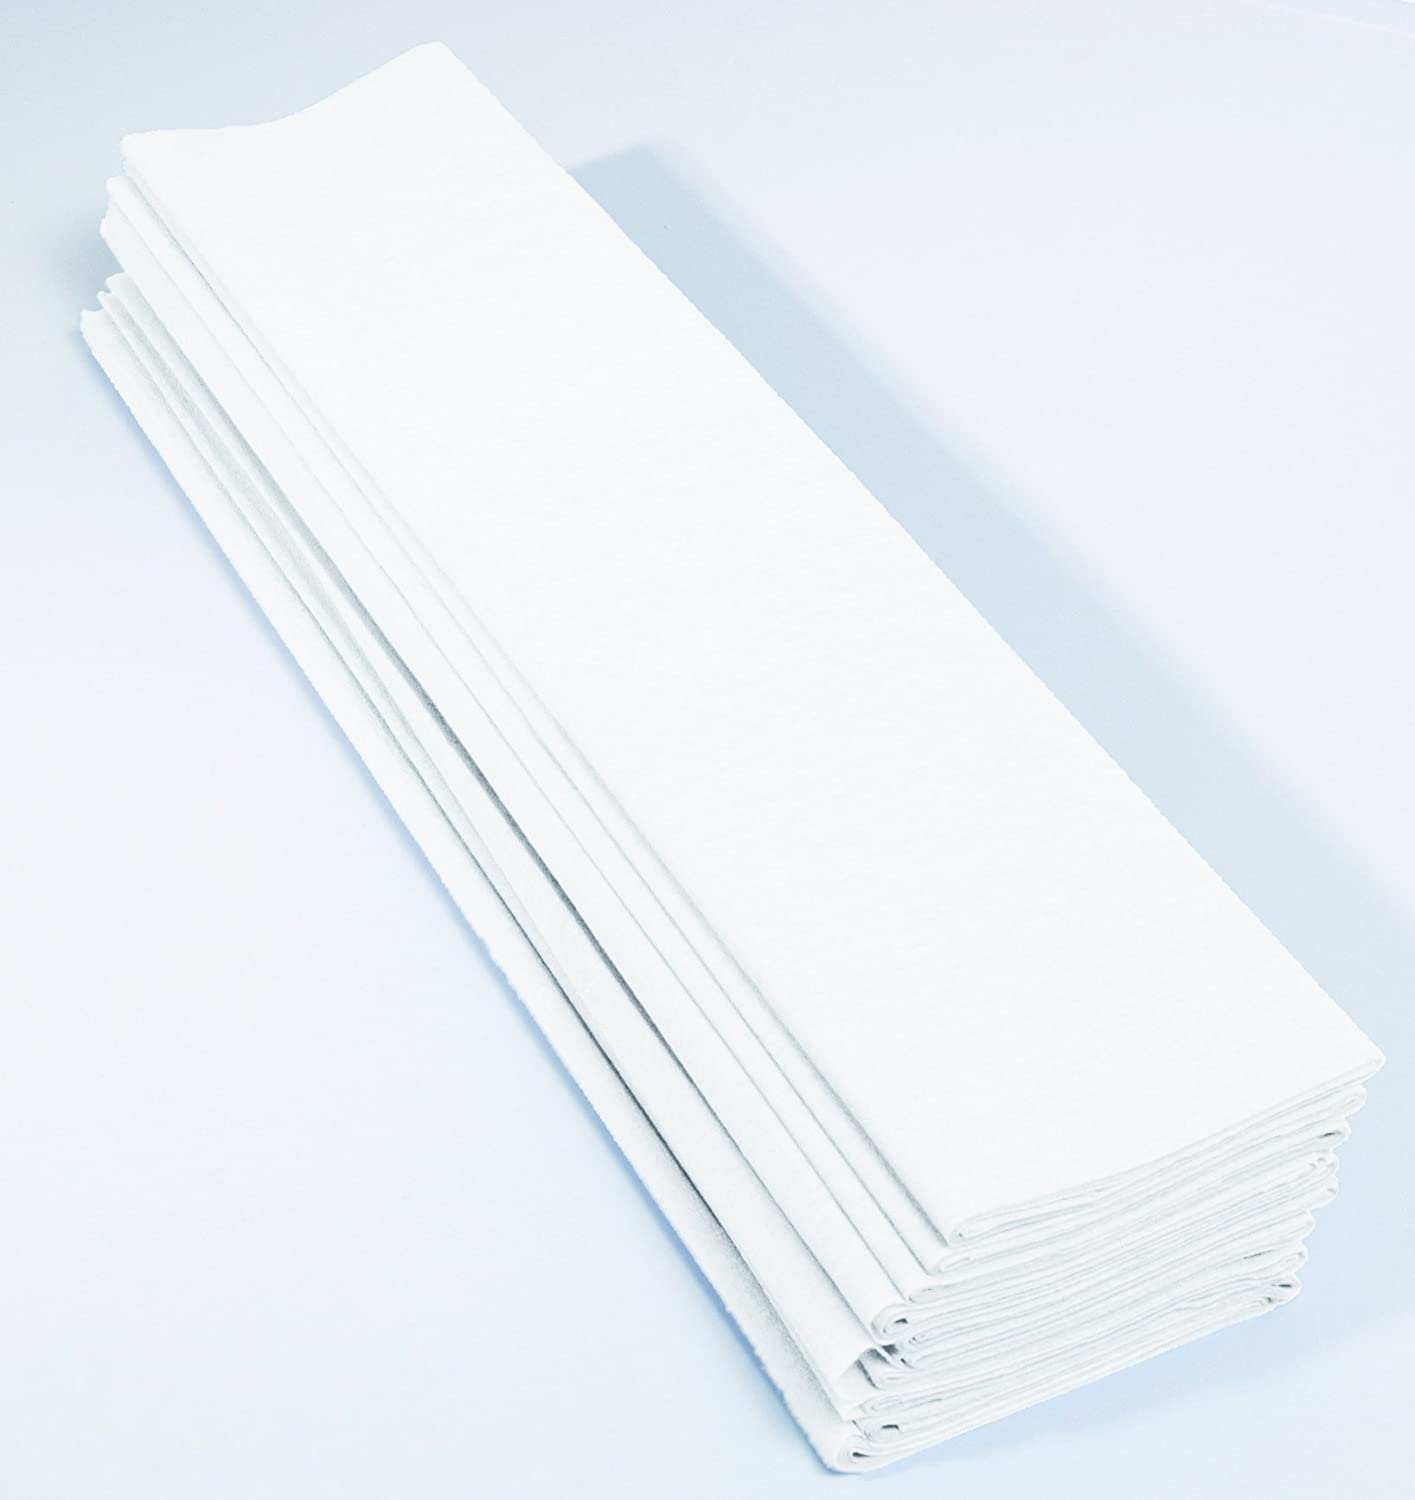 Maildor Crepe Paper, 32 g, 2 x 0.50 m, 40 Percent, 10 Sheets, White Clairefontaine 903001C